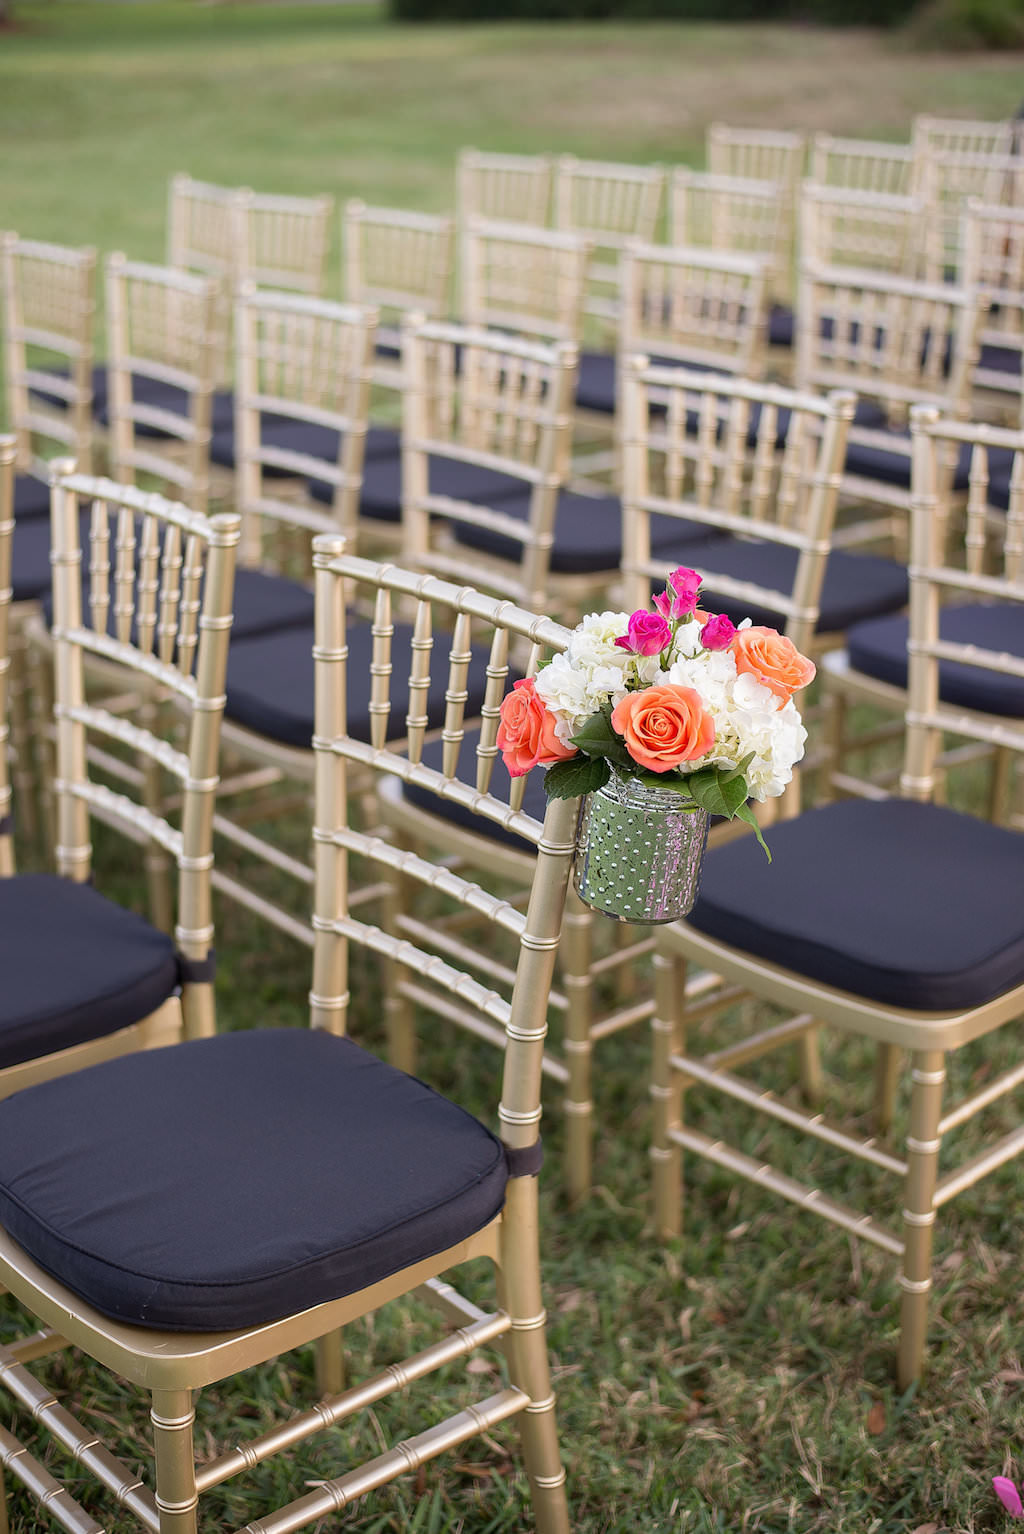 Outdoor Tropical Old Florida Themed Wedding Ceremony With Gold Chiavari Chairs With Black Cushions And Orange Rose With White And Pink Flowers And Greenery In Vintage Jar Decor Marry Me Tampa